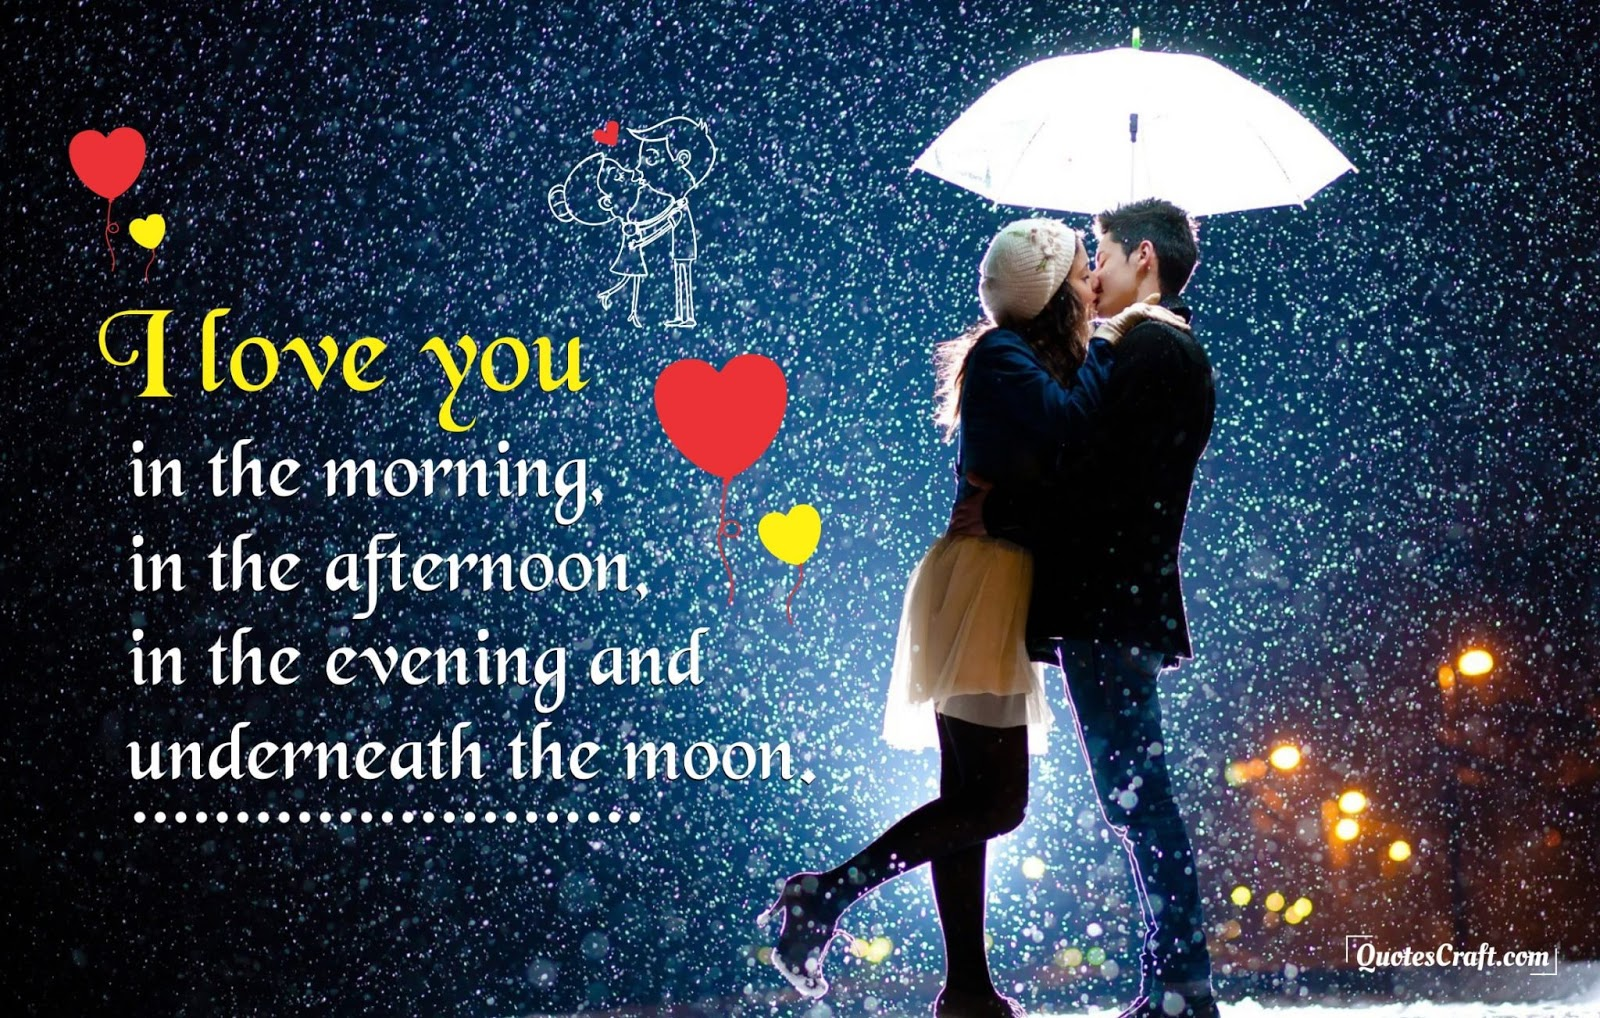 Best romantic quotes top romance quotes romantic comedies best romantic comedy